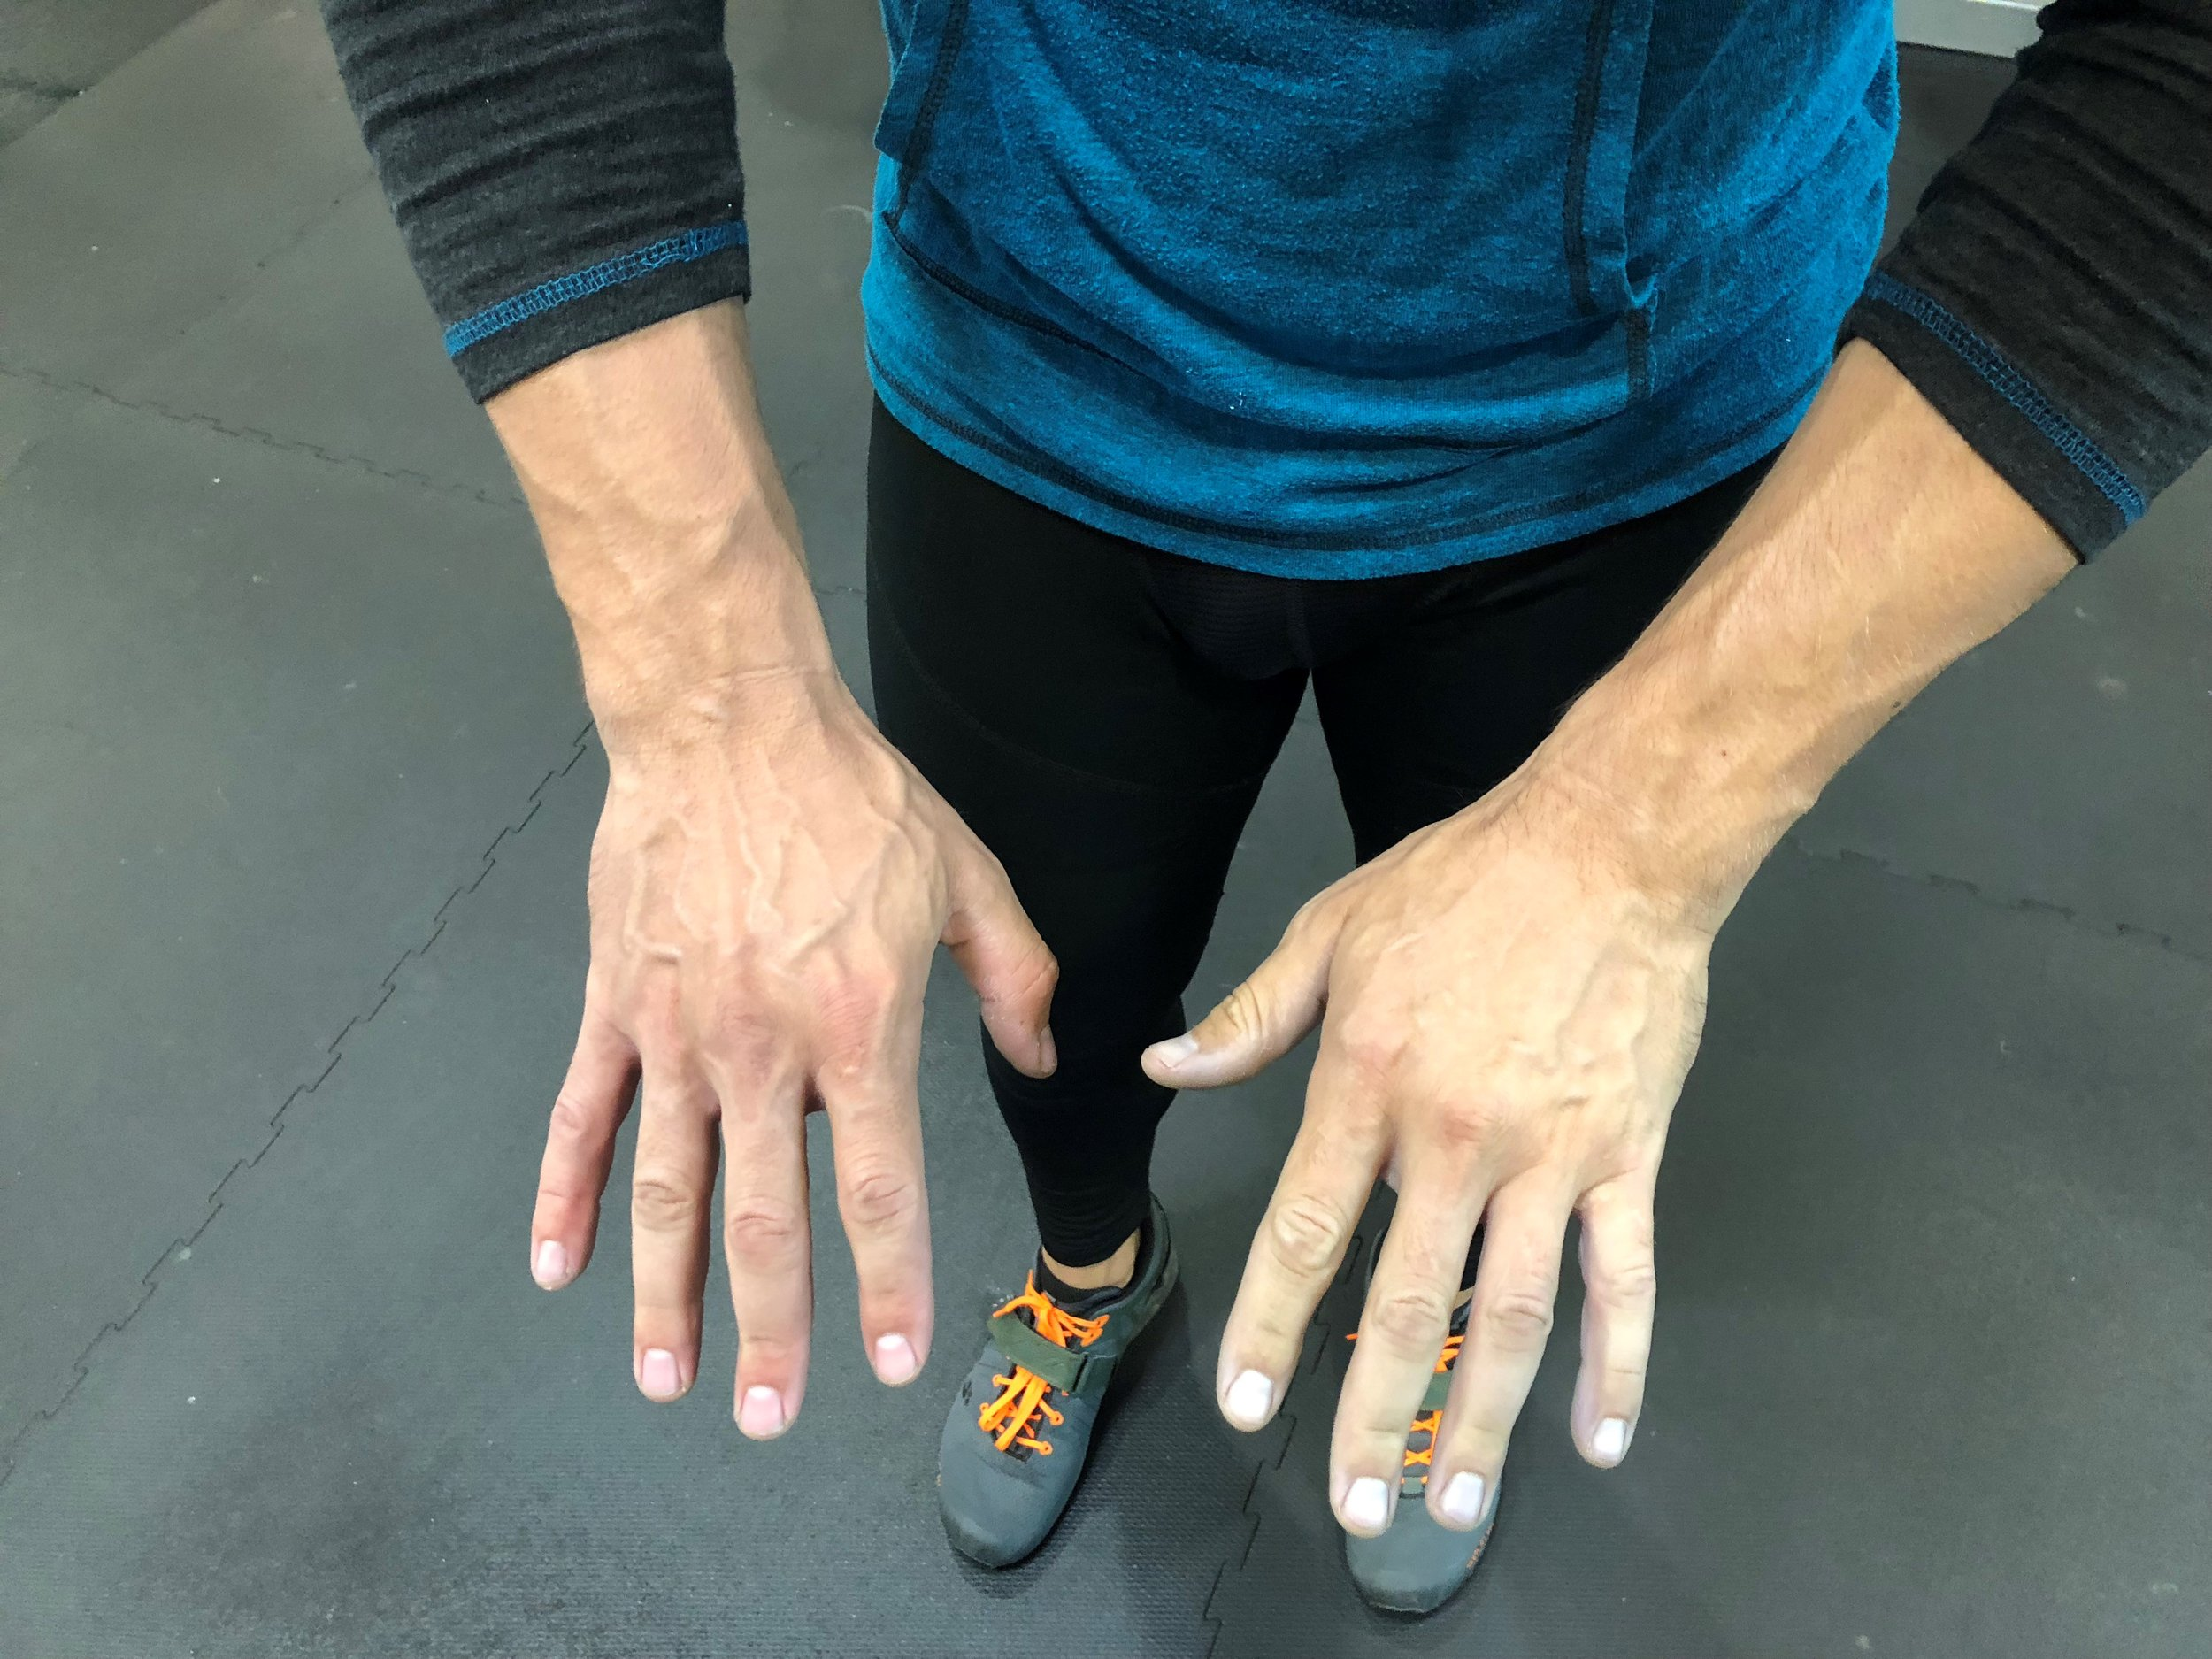 left hand was wrapped too tight which is identifiable by pale coloration, and sometimes less vascularity.